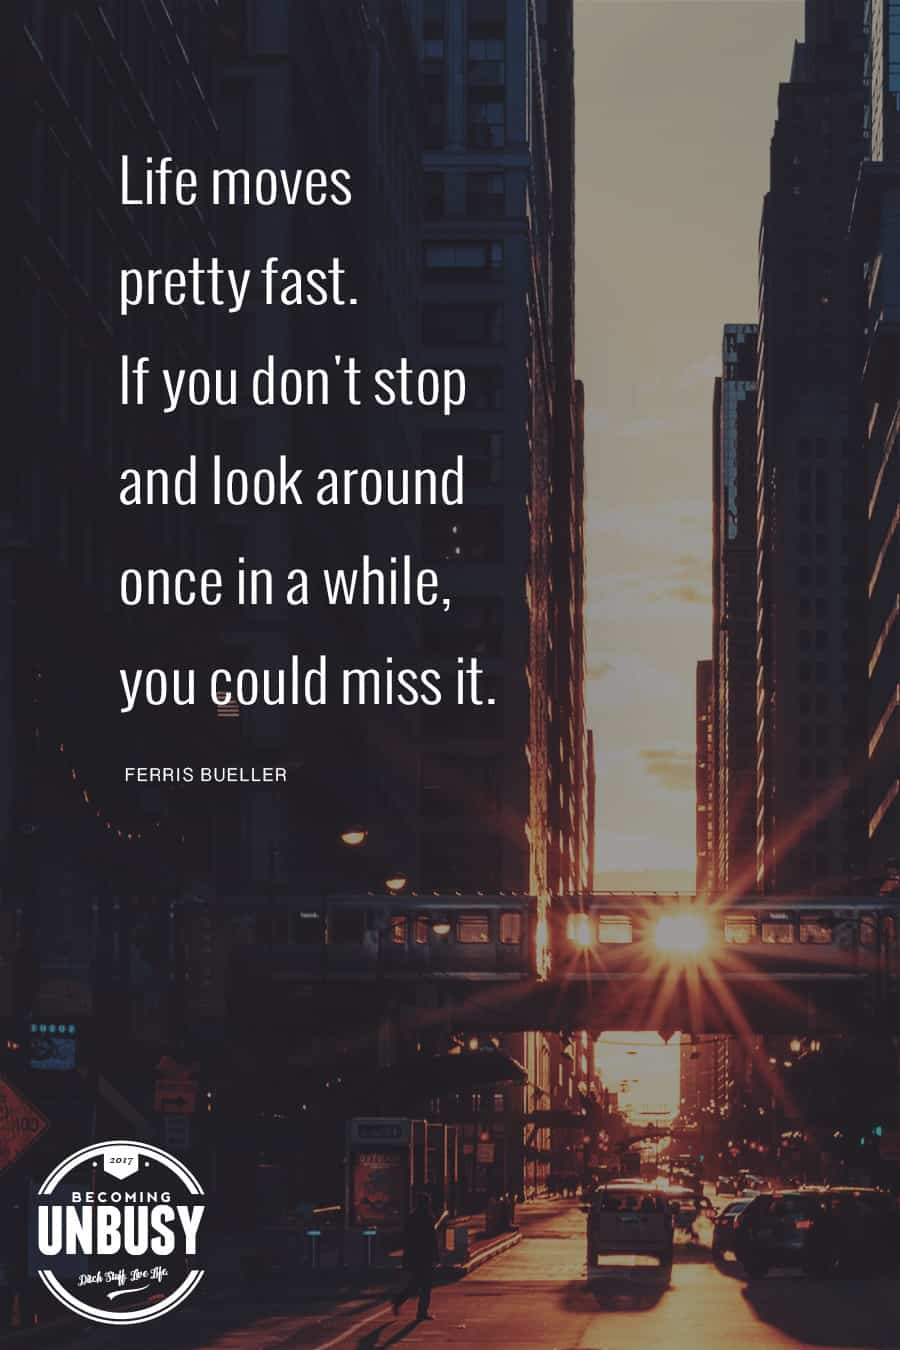 Life moves pretty fast. If you don't stop and look around once and awhile, you could miss it. - Ferris Bueller #quote #moviequotes #BecomingUnbusy *love this video and site